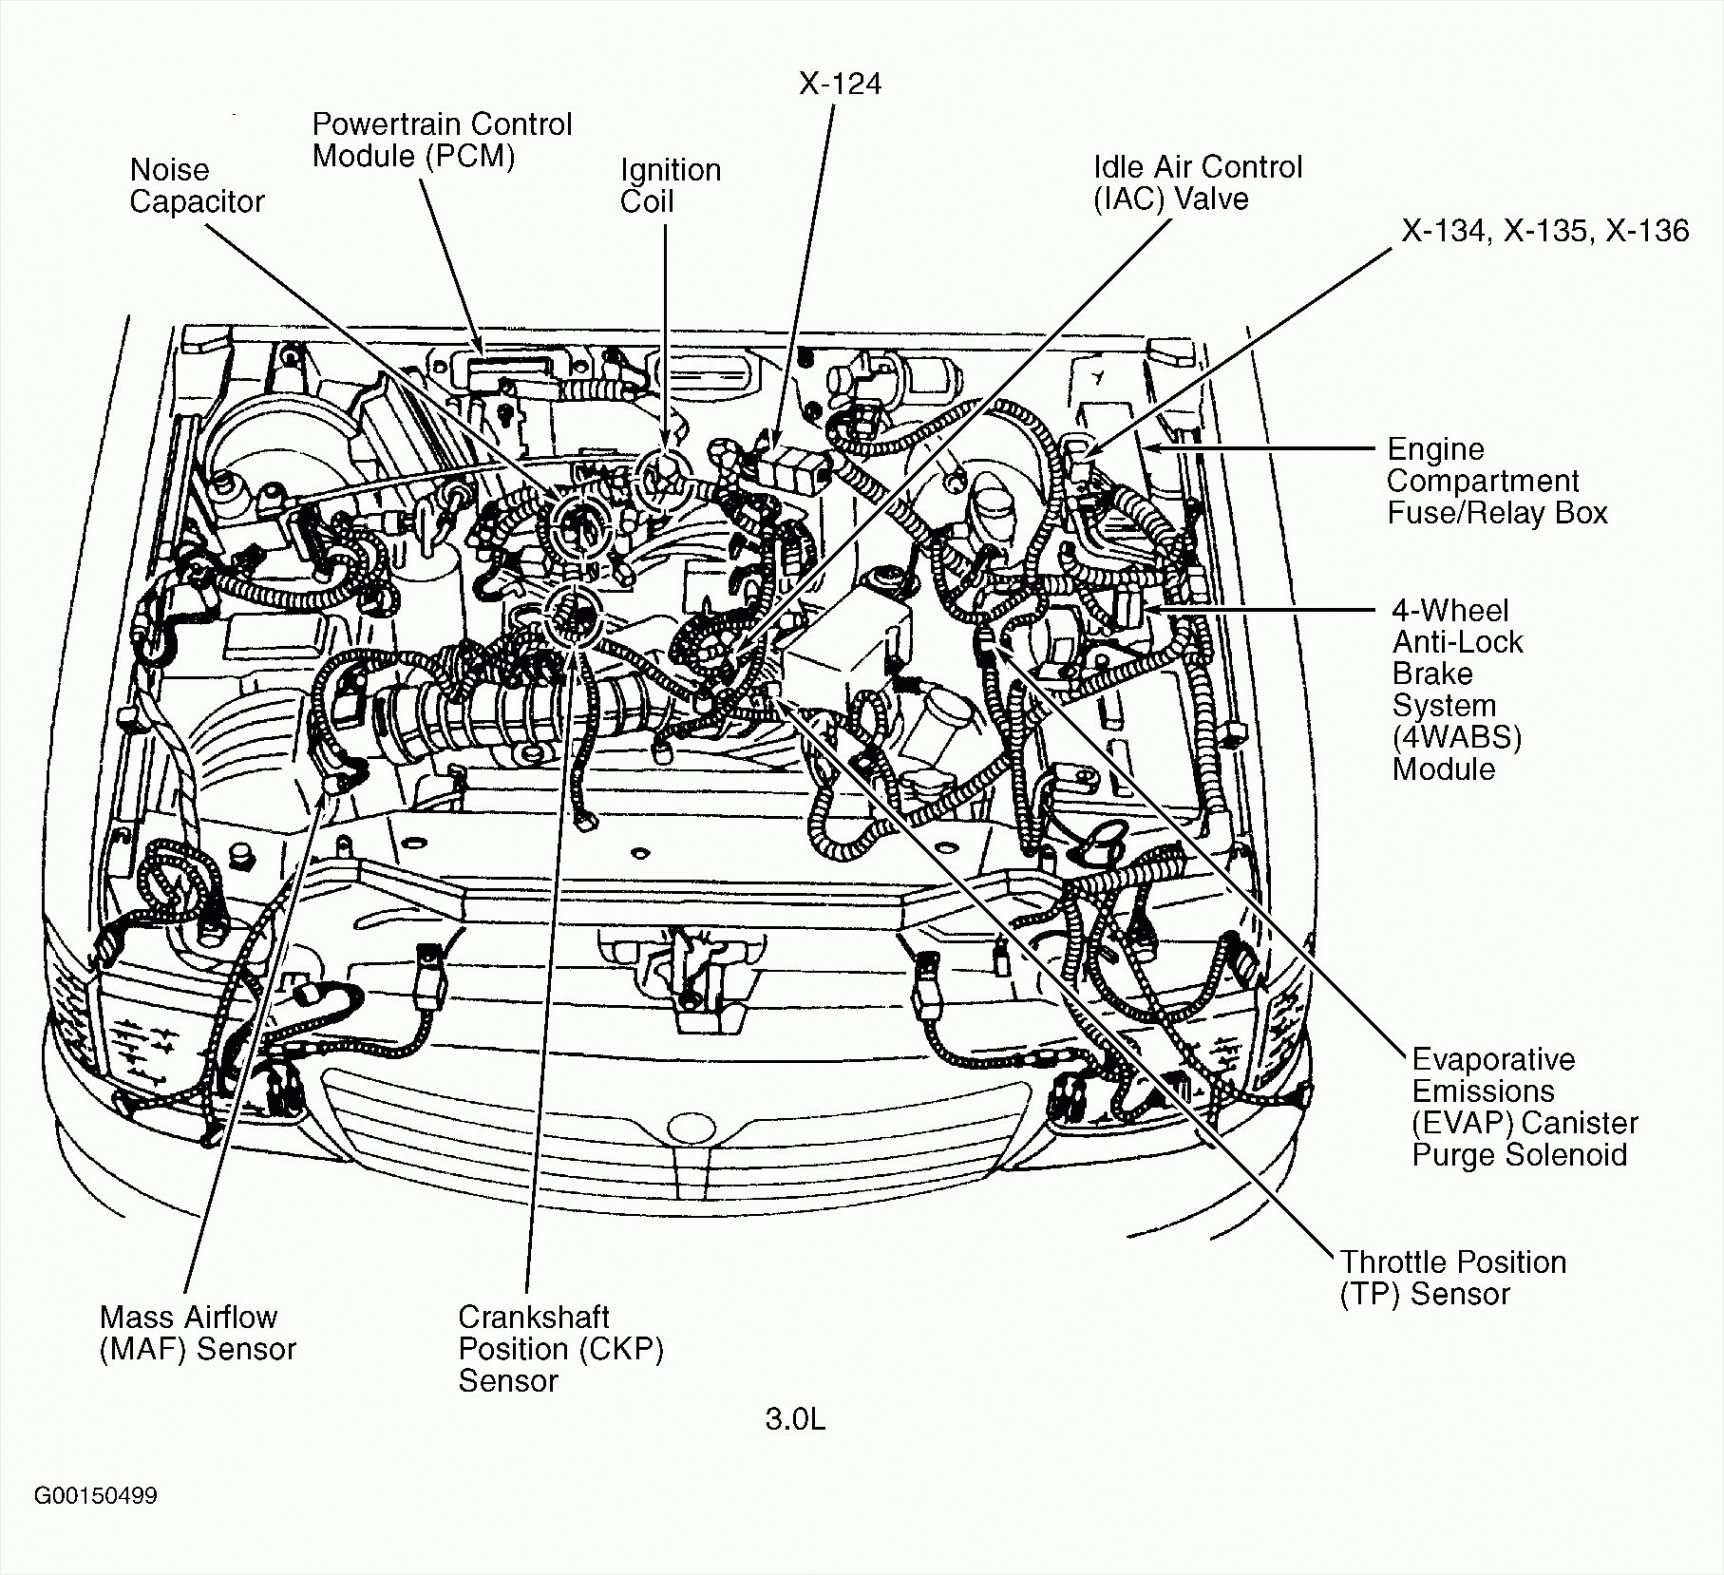 Vauxhall Corsa Engine Diagram Diagram 3 1 Liter Engine Smart Wiring Diagrams • Of Vauxhall Corsa Engine Diagram